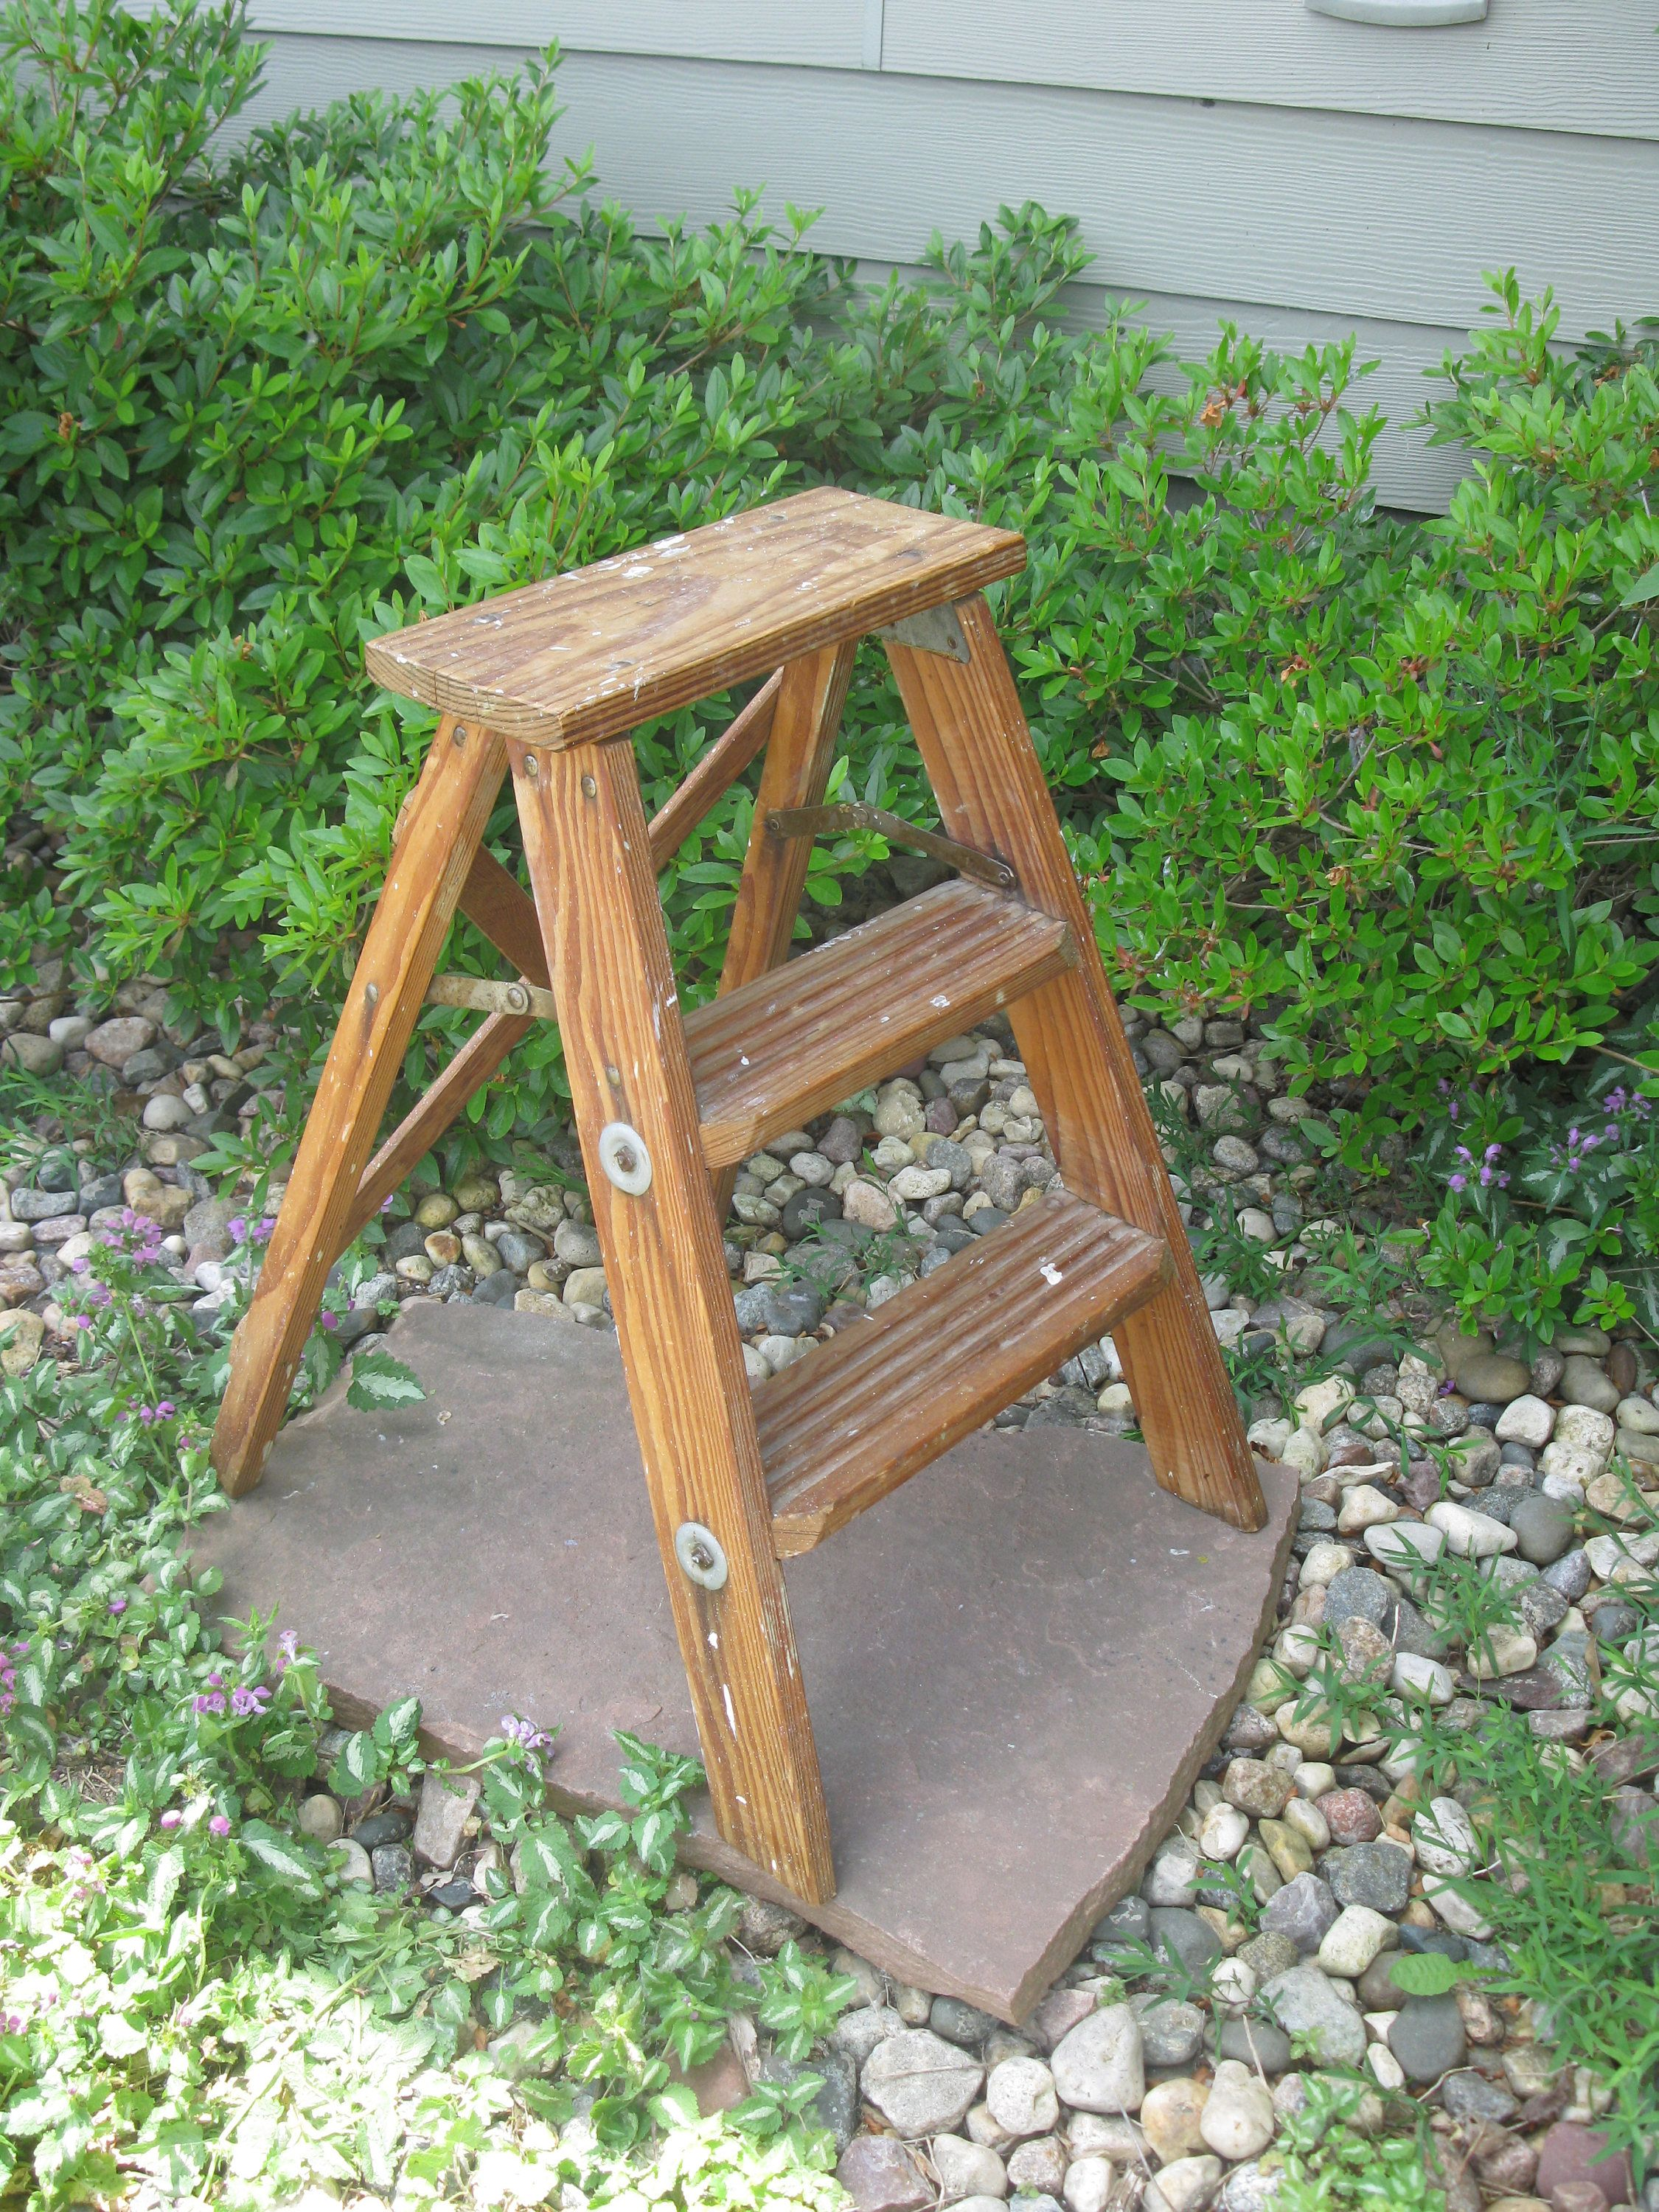 Vintage Wooden Step Ladder Step Stool Folding Ladder Plant Stand Rustic Shabby Primitive Distressed Wood Ladder Wooden Steps Wood Ladder Step Ladders